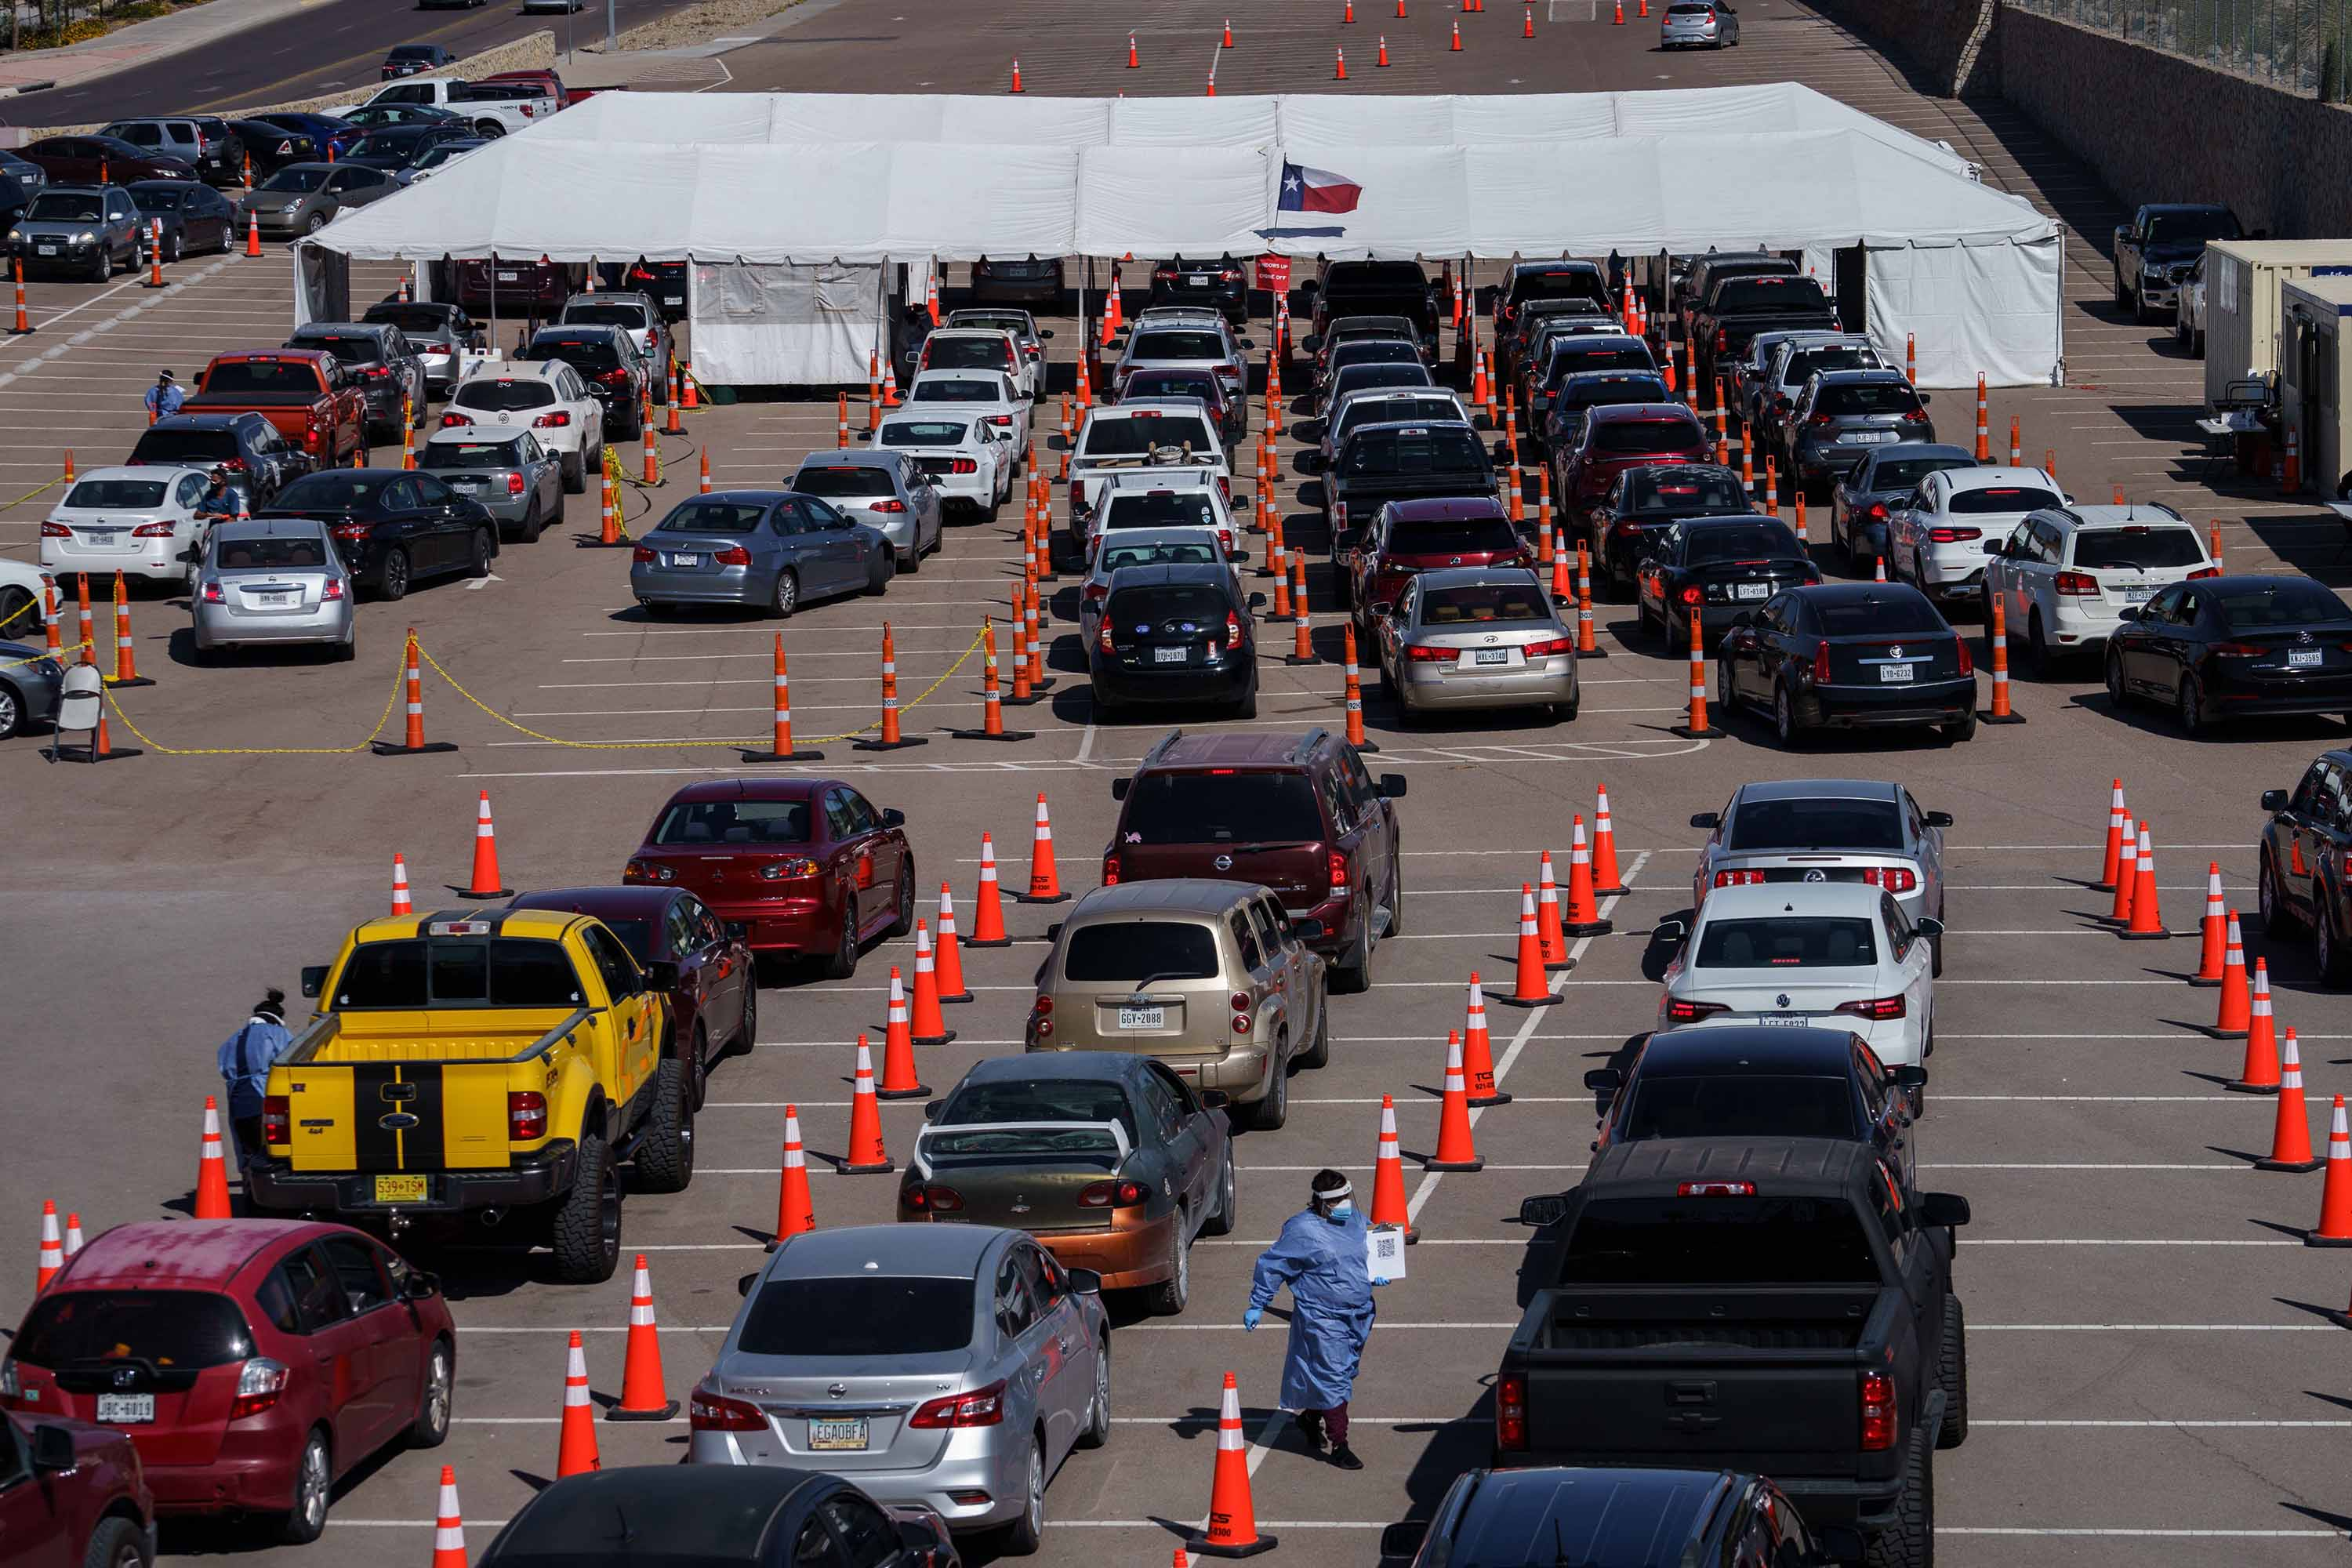 Cars line up for Covid-19 tests at the University of Texas El Paso on October 23.